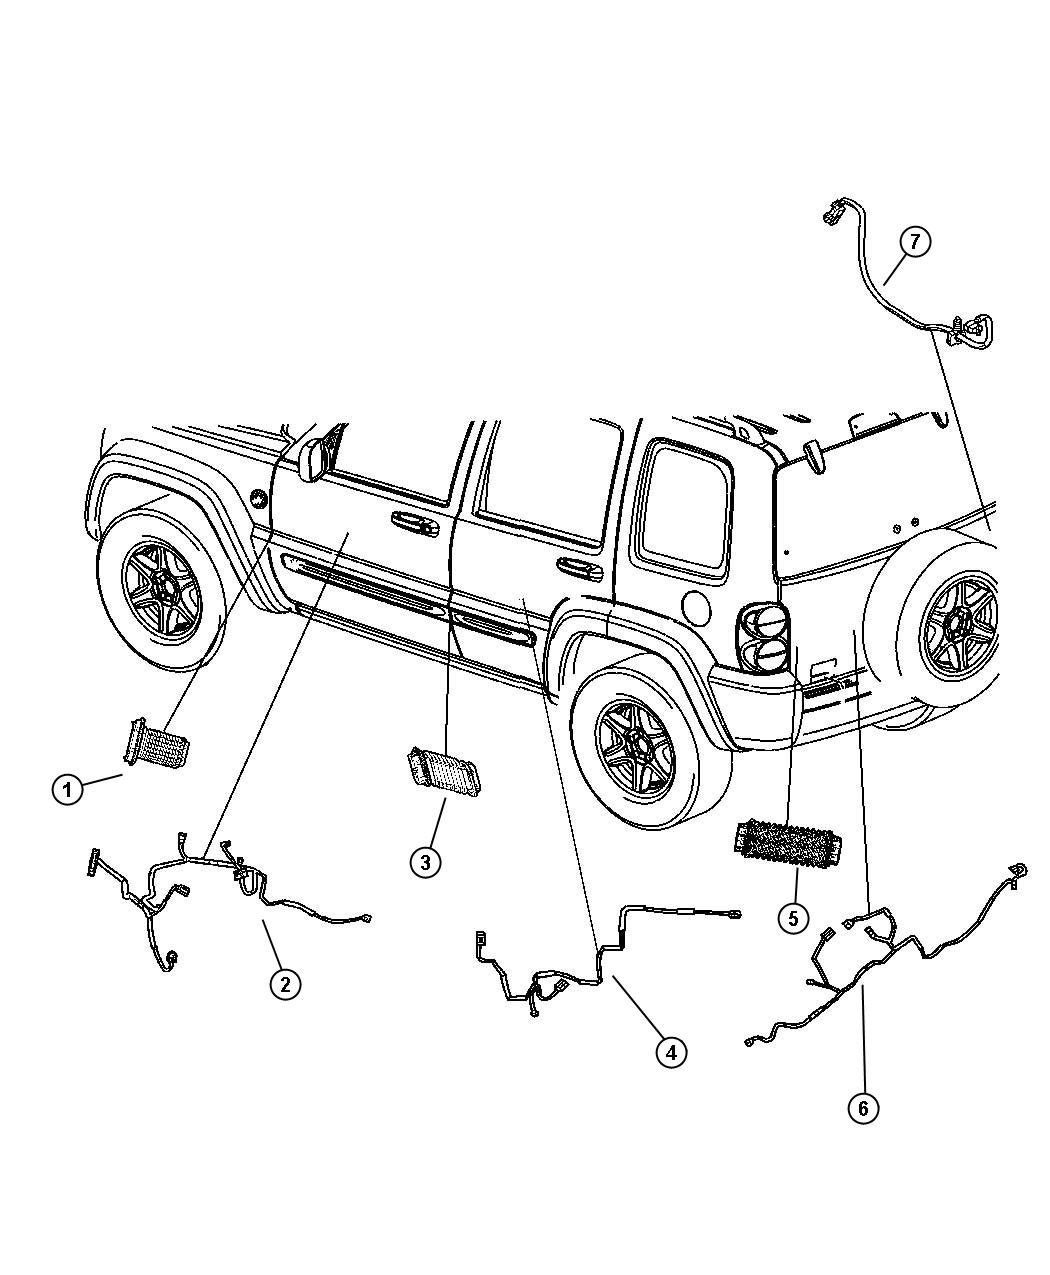 2006 jeep commander body parts diagram